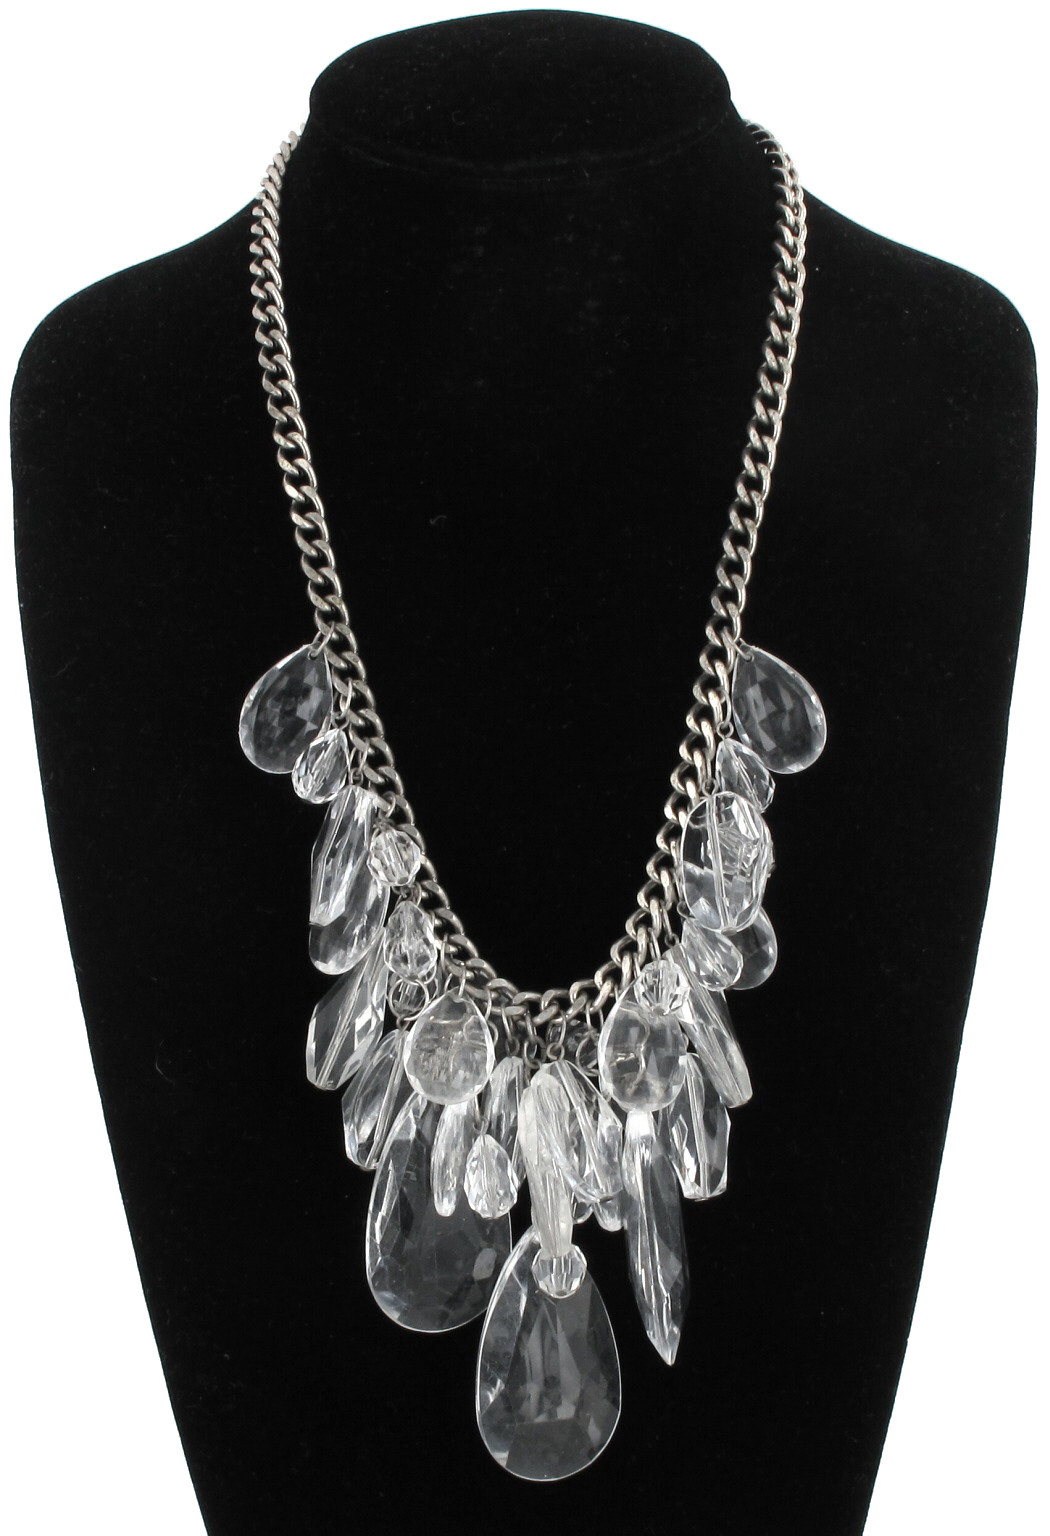 Clear Ice Look Faux Crystal Big Fringe Faceted Beads Statement Necklace